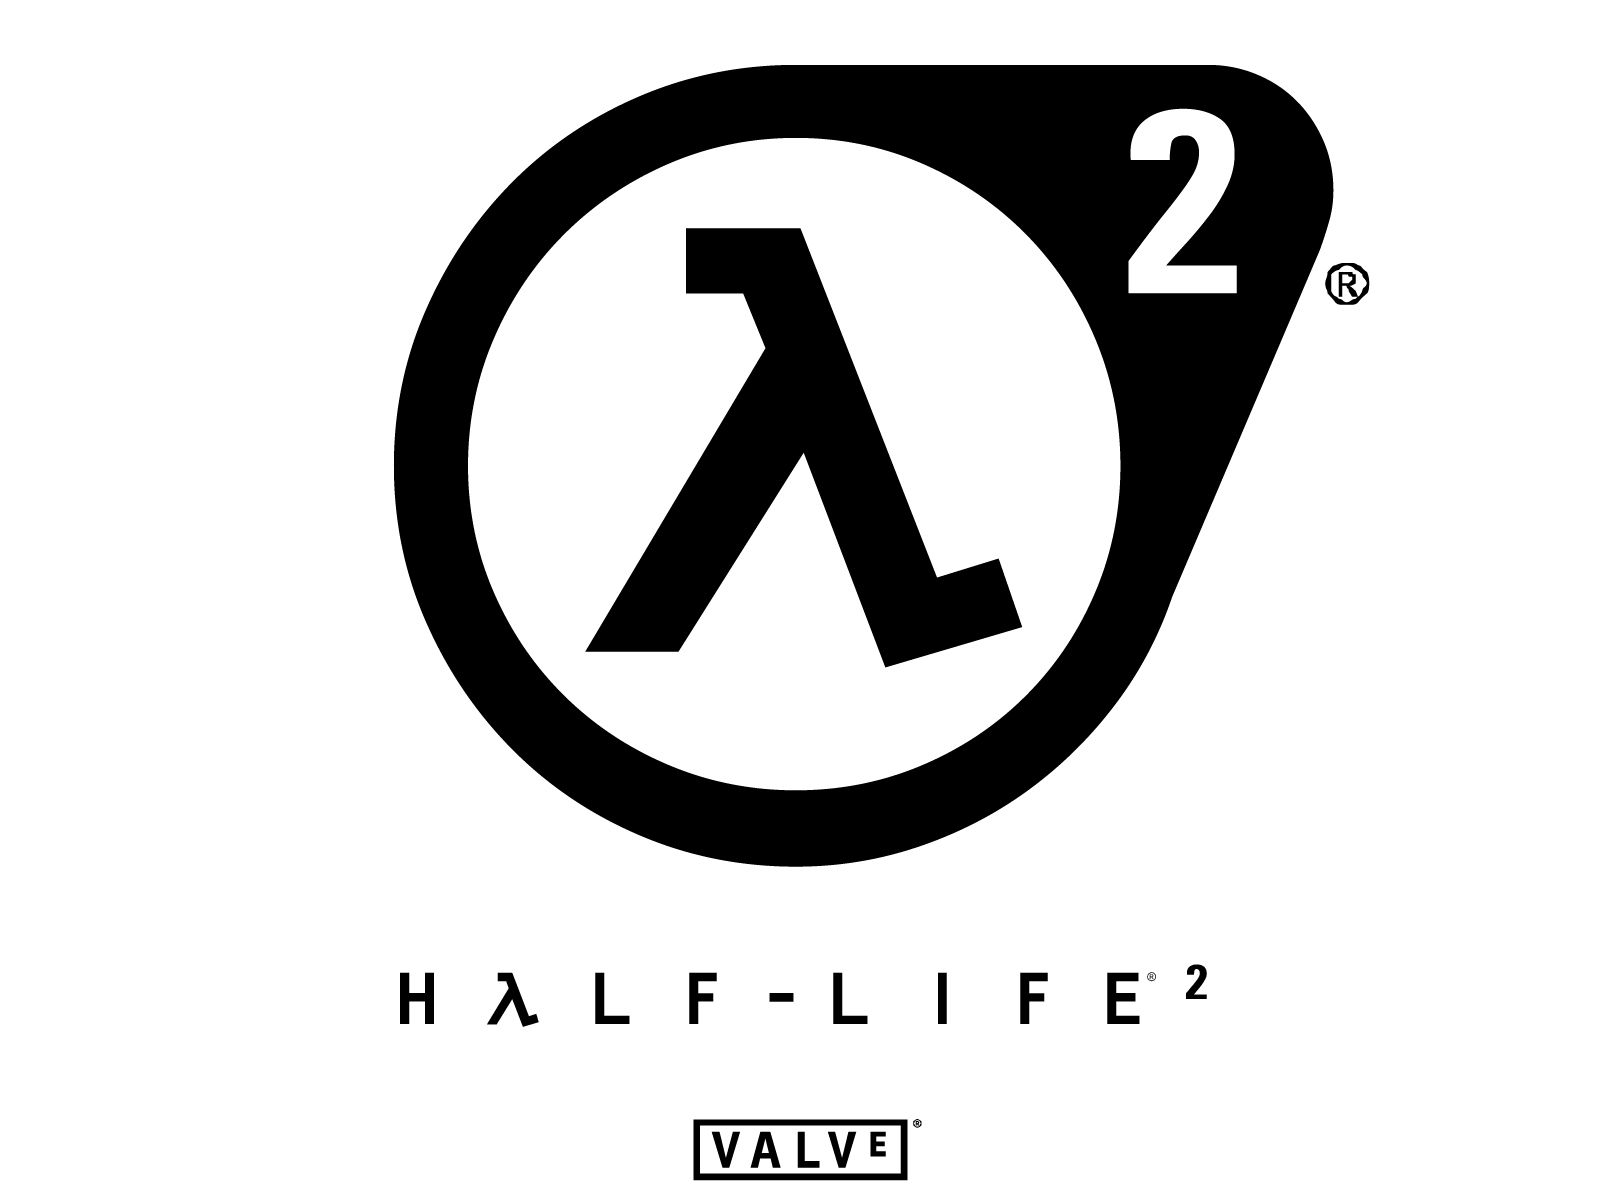 Logotype Of Half Life 2 By Valve Corporation